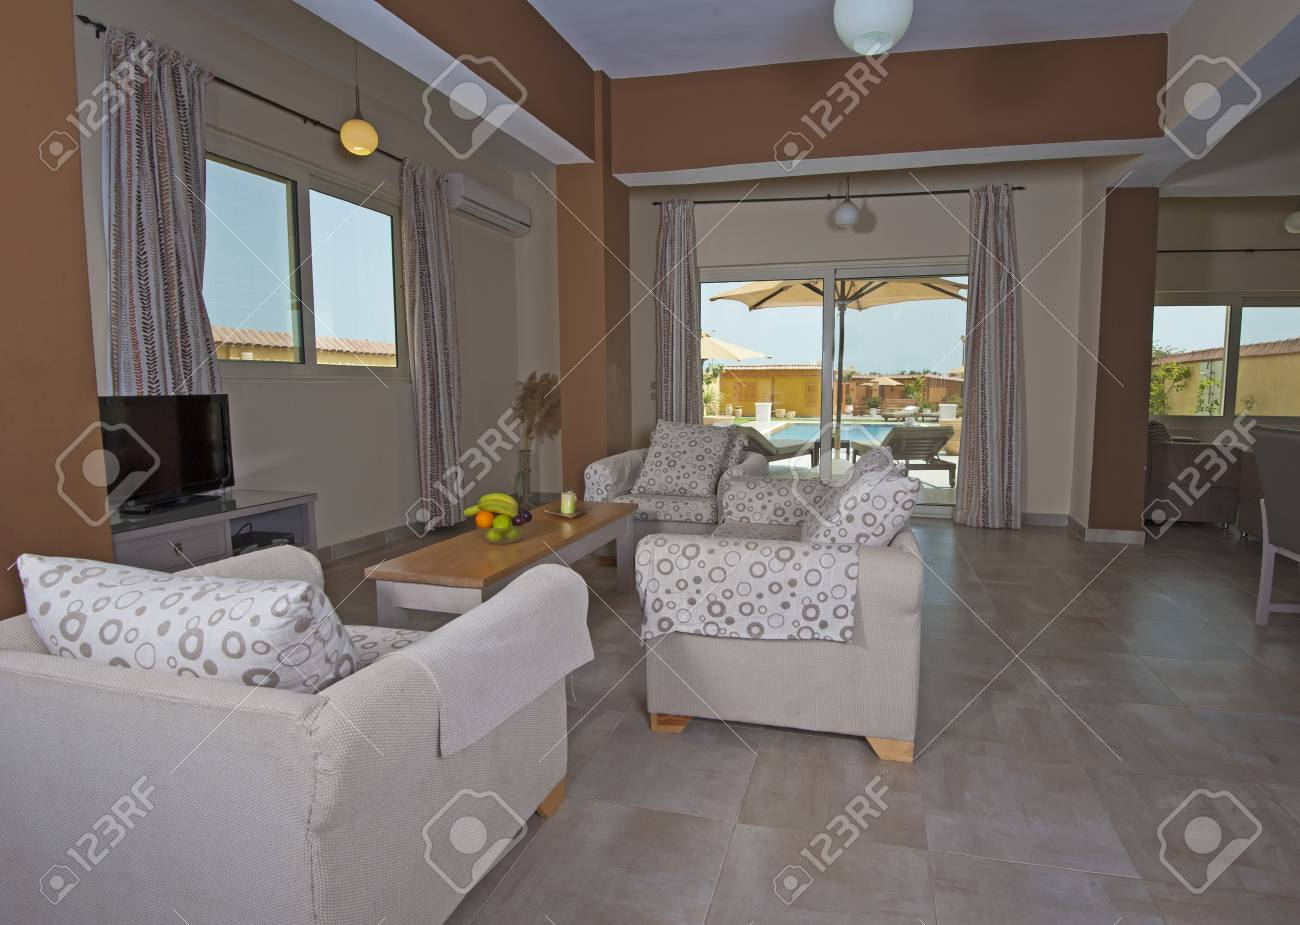 Interior design of luxury show home apartment with swimming pool view Stock Photo - 19159788